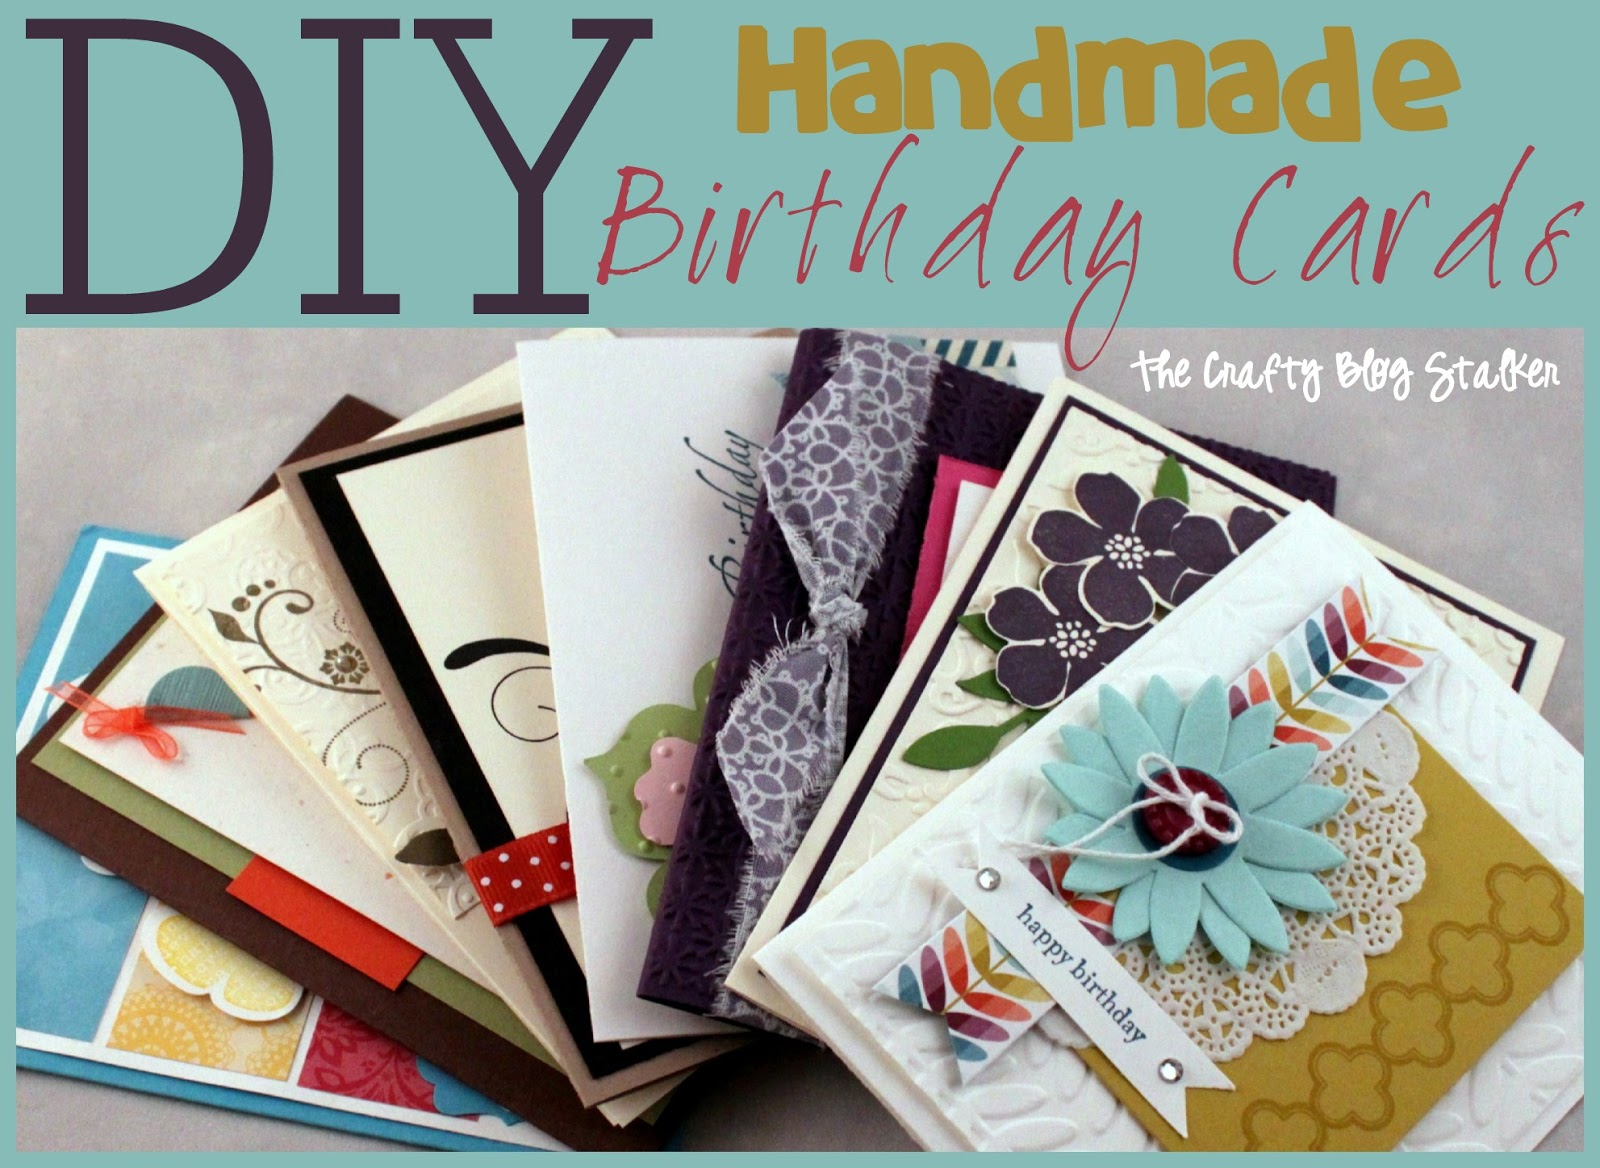 handmade birthday card ideas  the crafty blog stalker, Birthday card